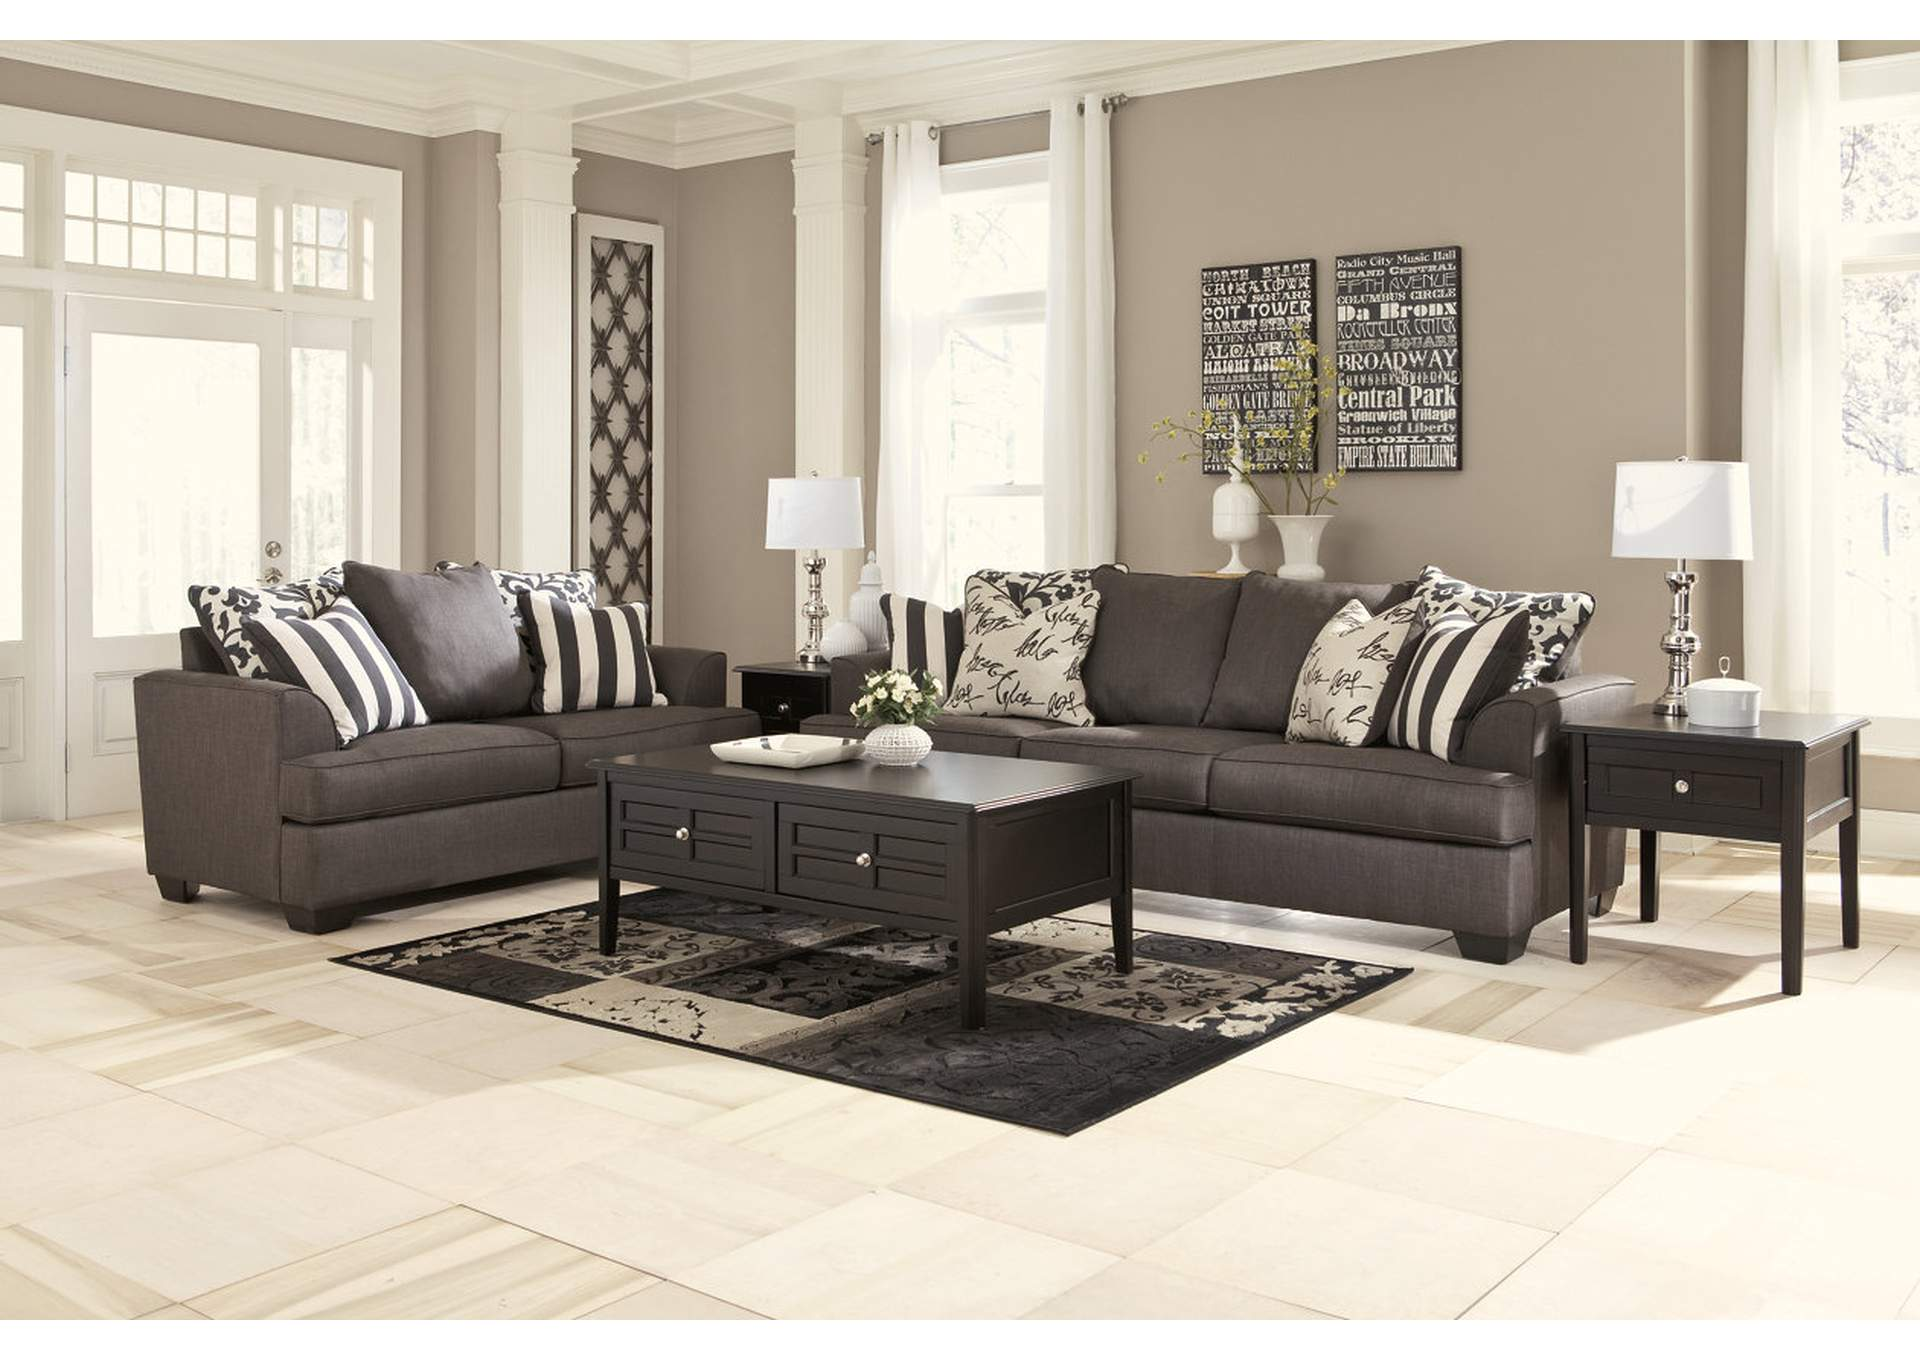 Living Room Levon Charcoal Sofa LoveseatSignature Design By Ashley